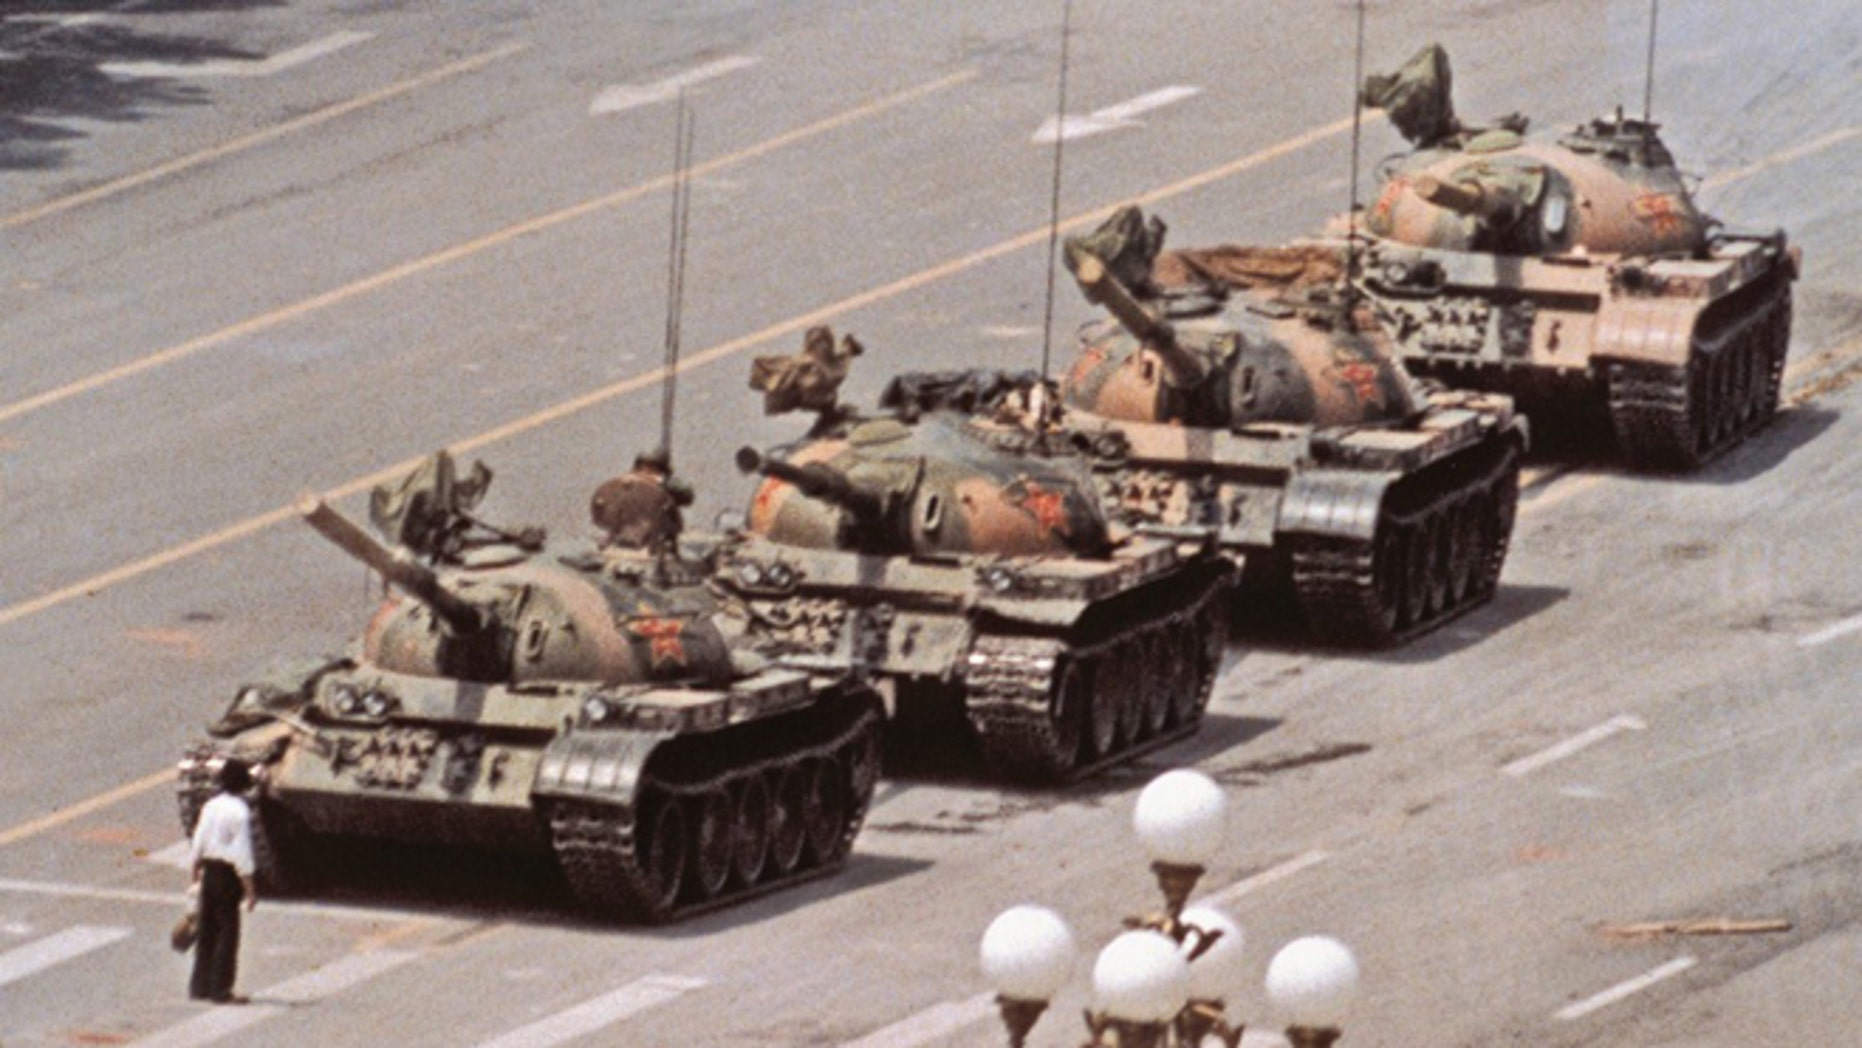 The famous photo of Tank Man in Tiananmen Square, Beijing, June 5, 1989. (Photo: Jeff Widener/Associated Press)